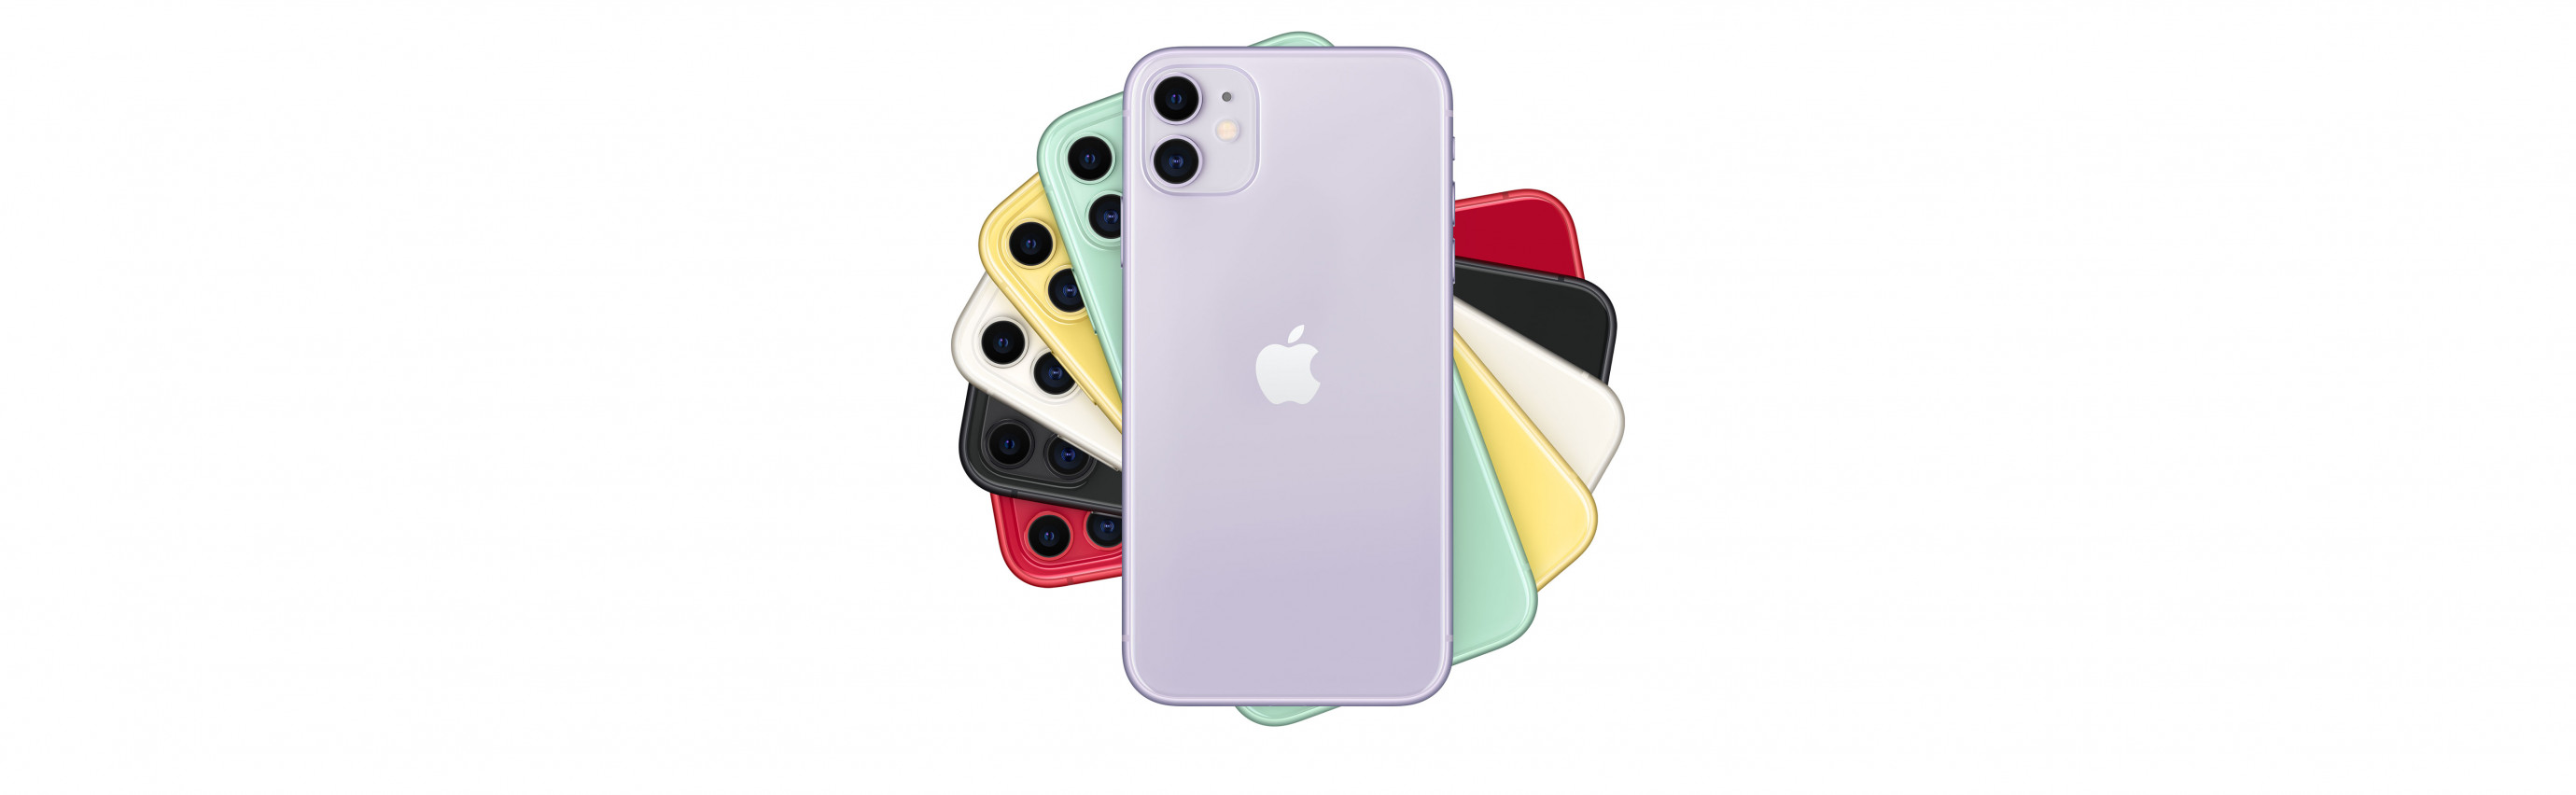 iPhone11-productpage-fr_01_03.jpg